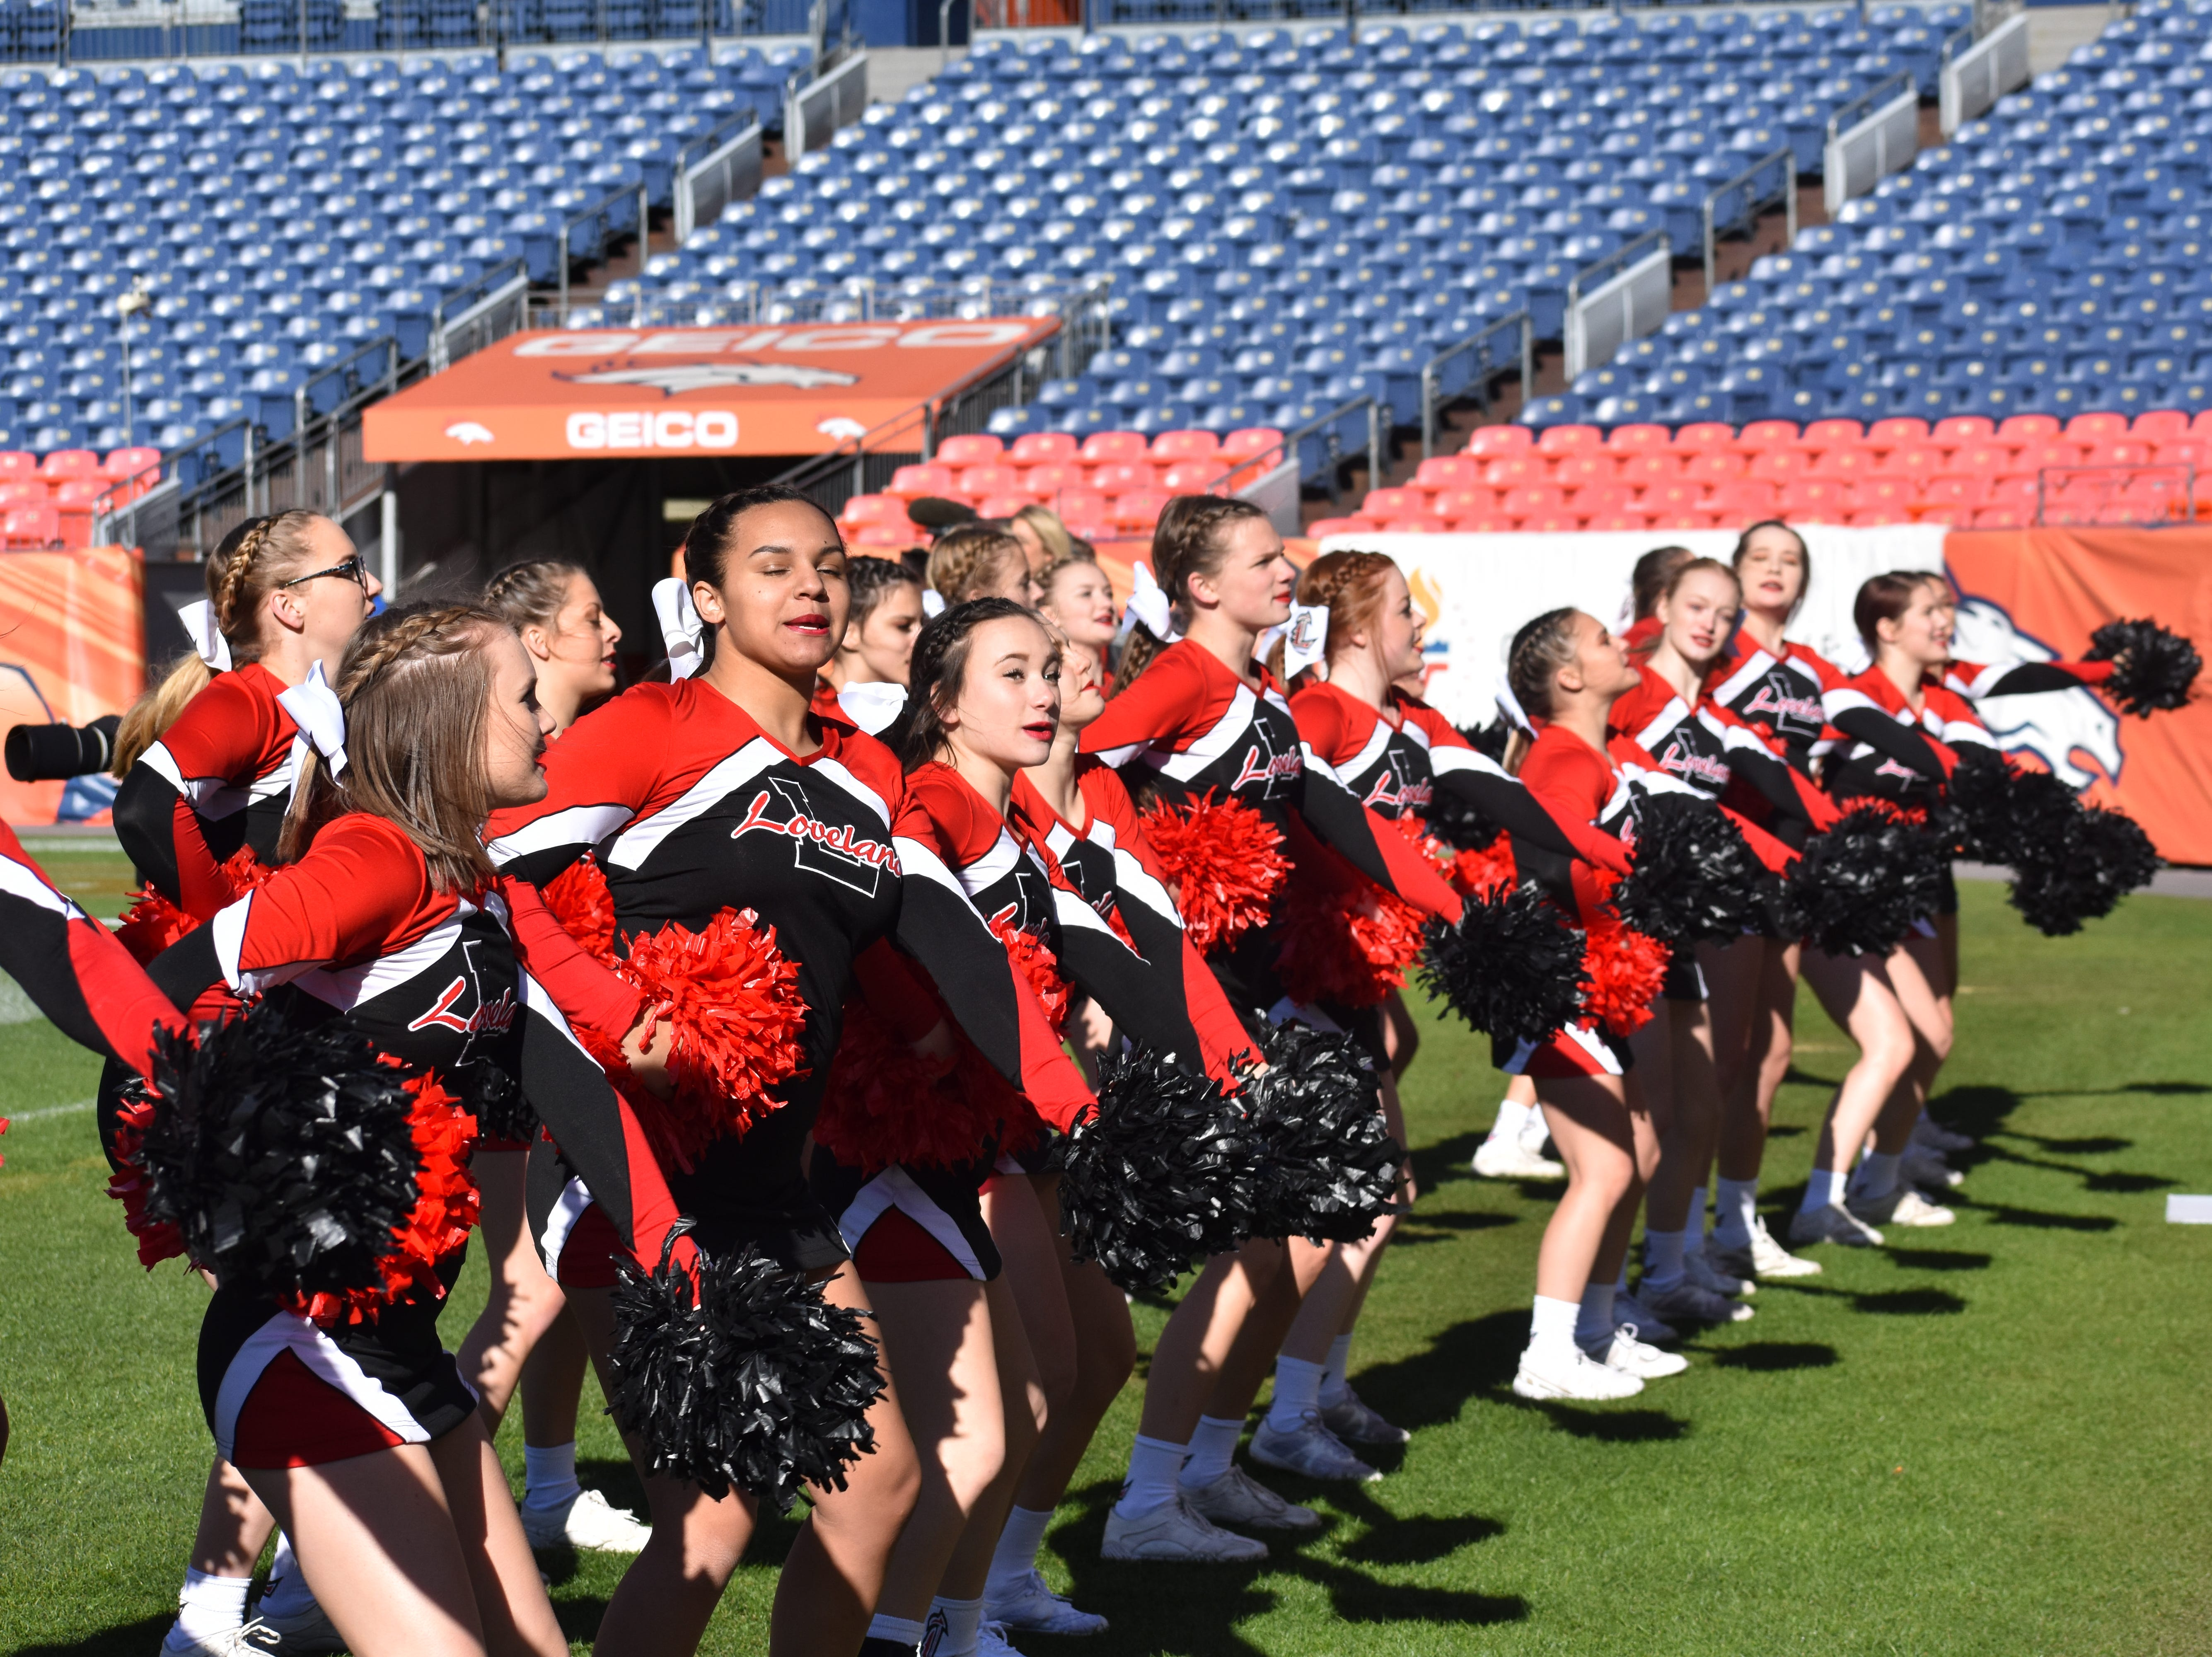 Loveland High cheerleaders during the Class 4A state championship football game Saturday at Broncos Stadium at Mile High in Denver.